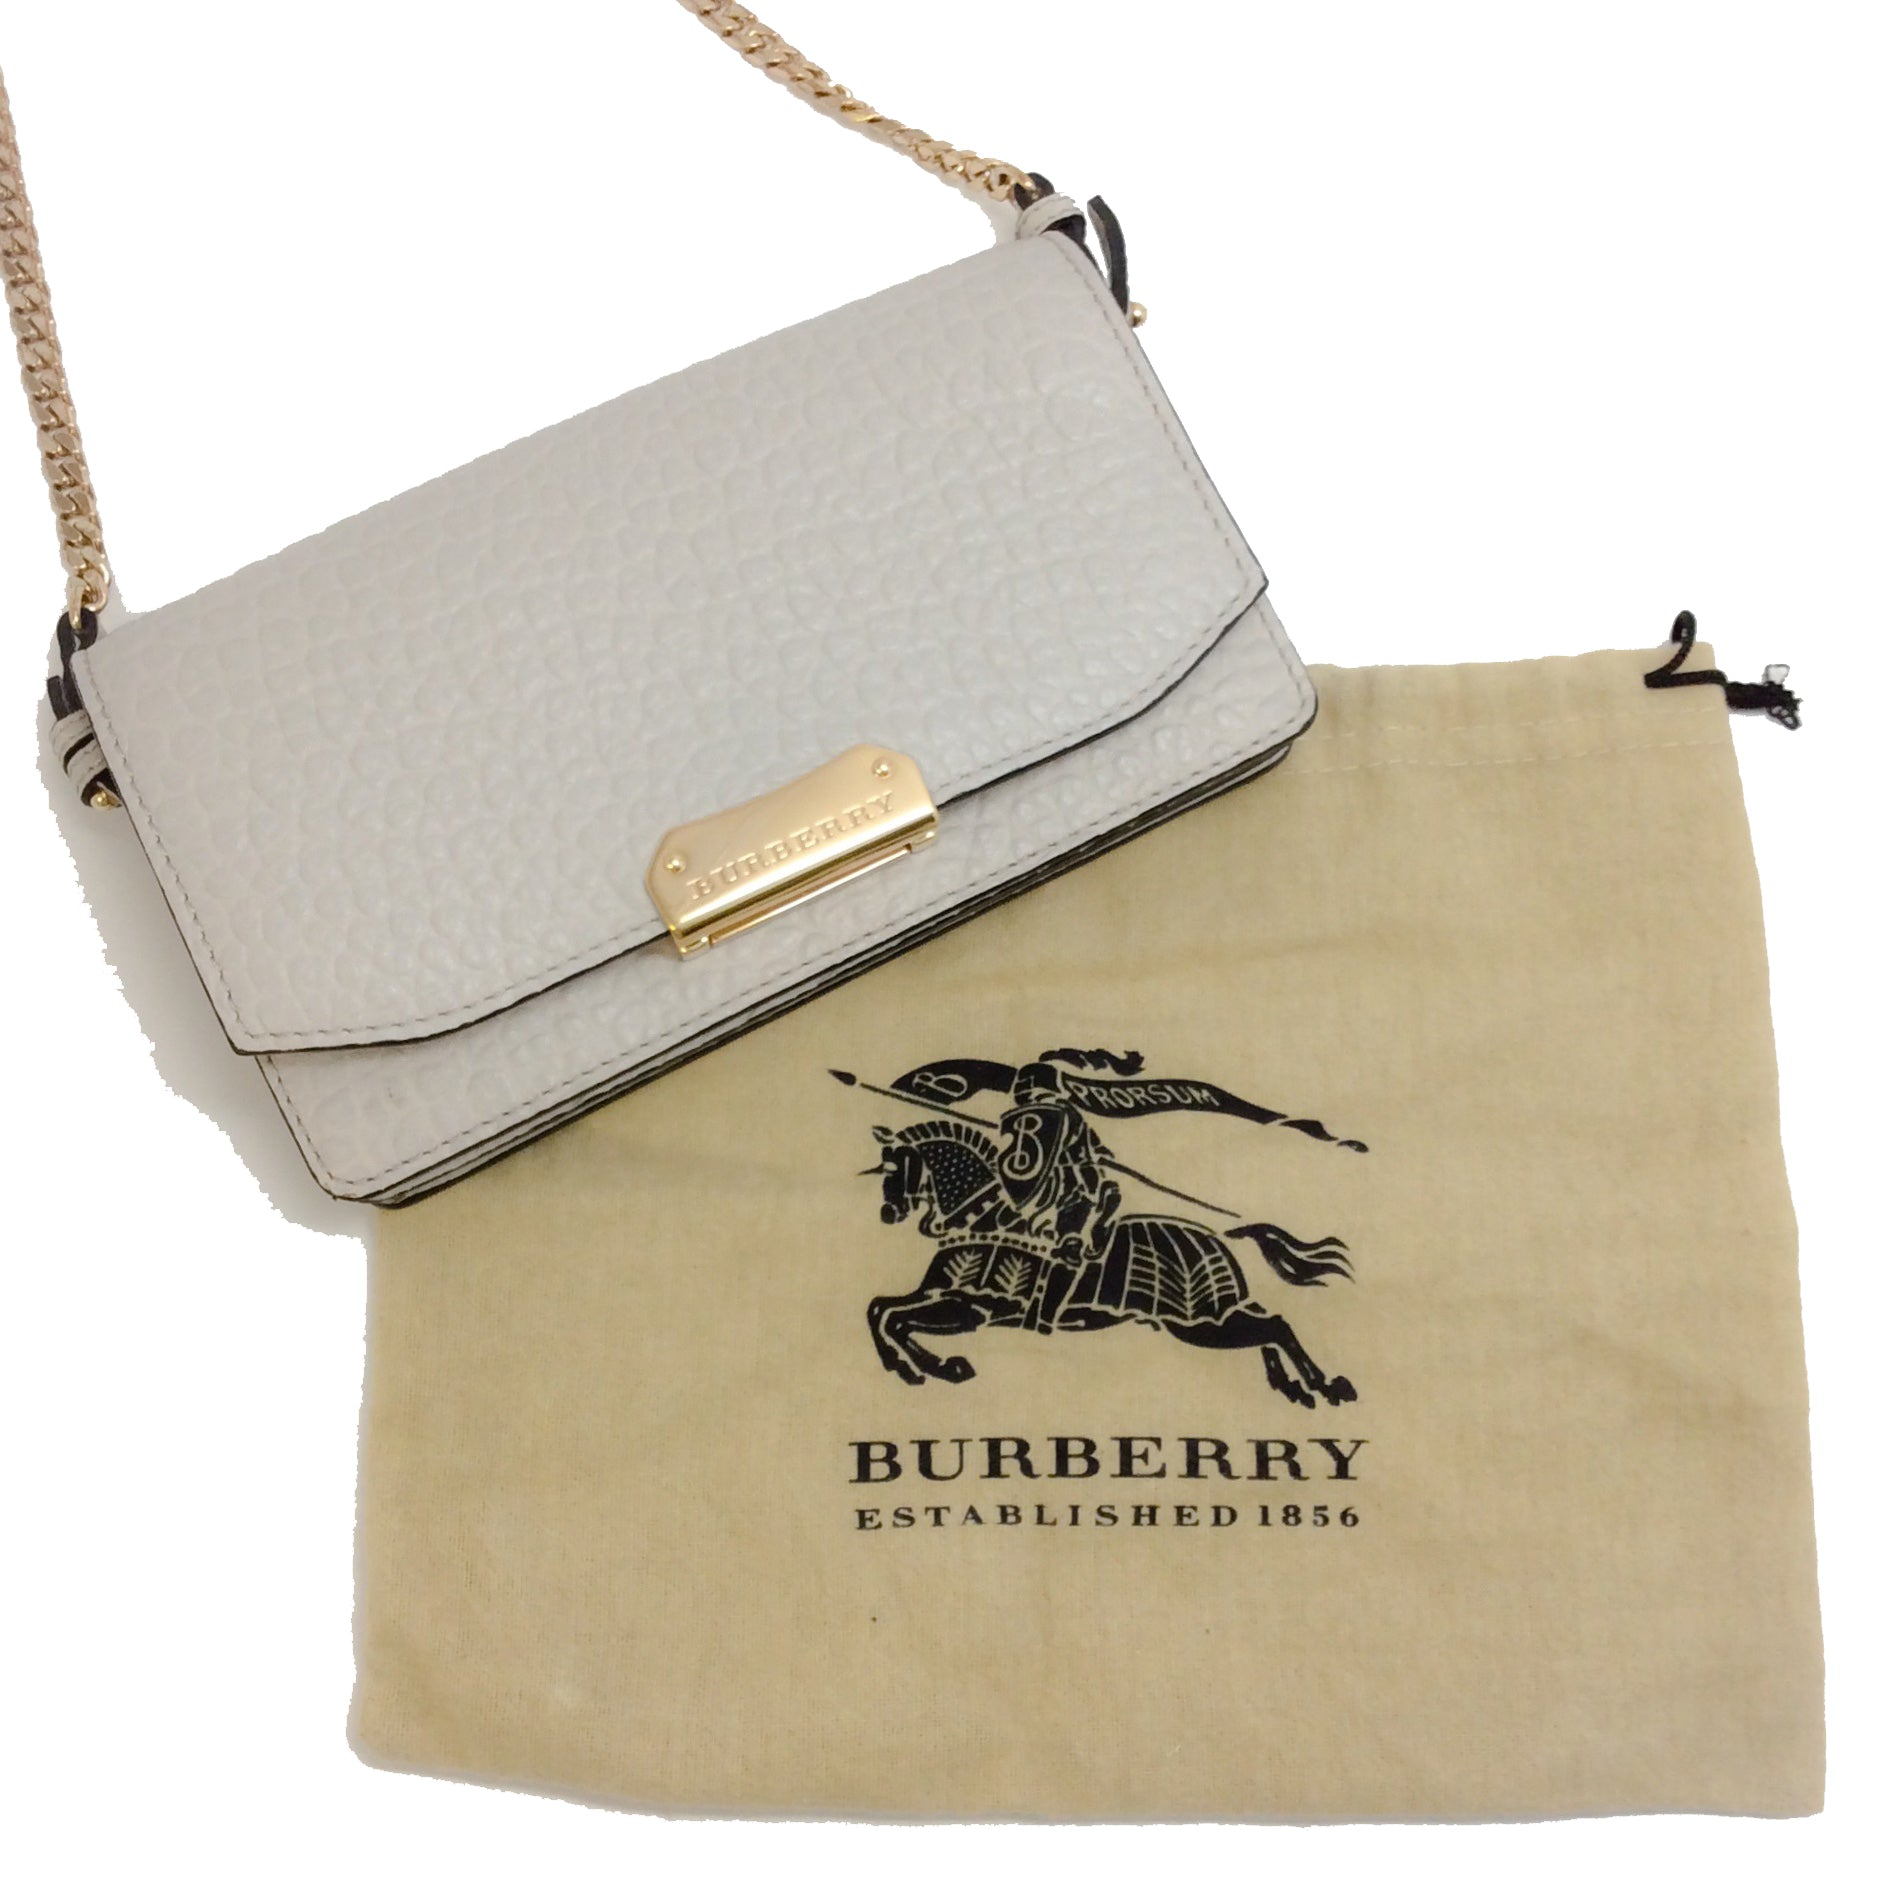 Burberry Wallet on Chain Light Grey Pebbled Leather Cross Body Bag